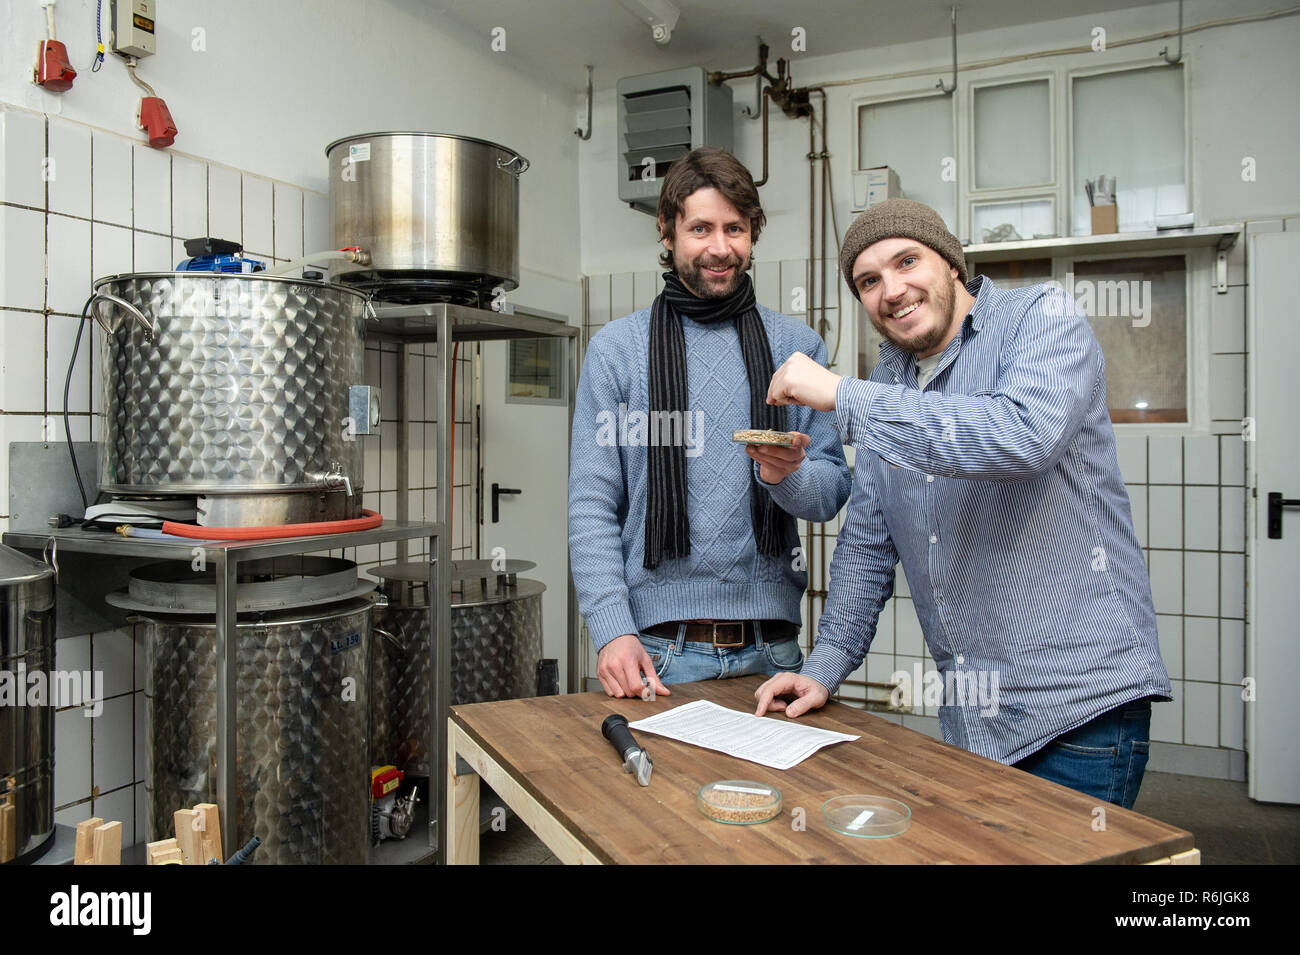 "Kassel, Germany. 22nd Nov, 2018. Johannes Alt (l) and Erik Schäfer, owner of the Steckenpferd brewery, stand with a bowl of wheat malt at the brewery in the brewery. (to dpa ""Successful in the niche - Craft beer brewers assert themselves on the market"" of 06.12.2018) Credit: Swen Pförtner/dpa/Alamy Live News Stock Photo"